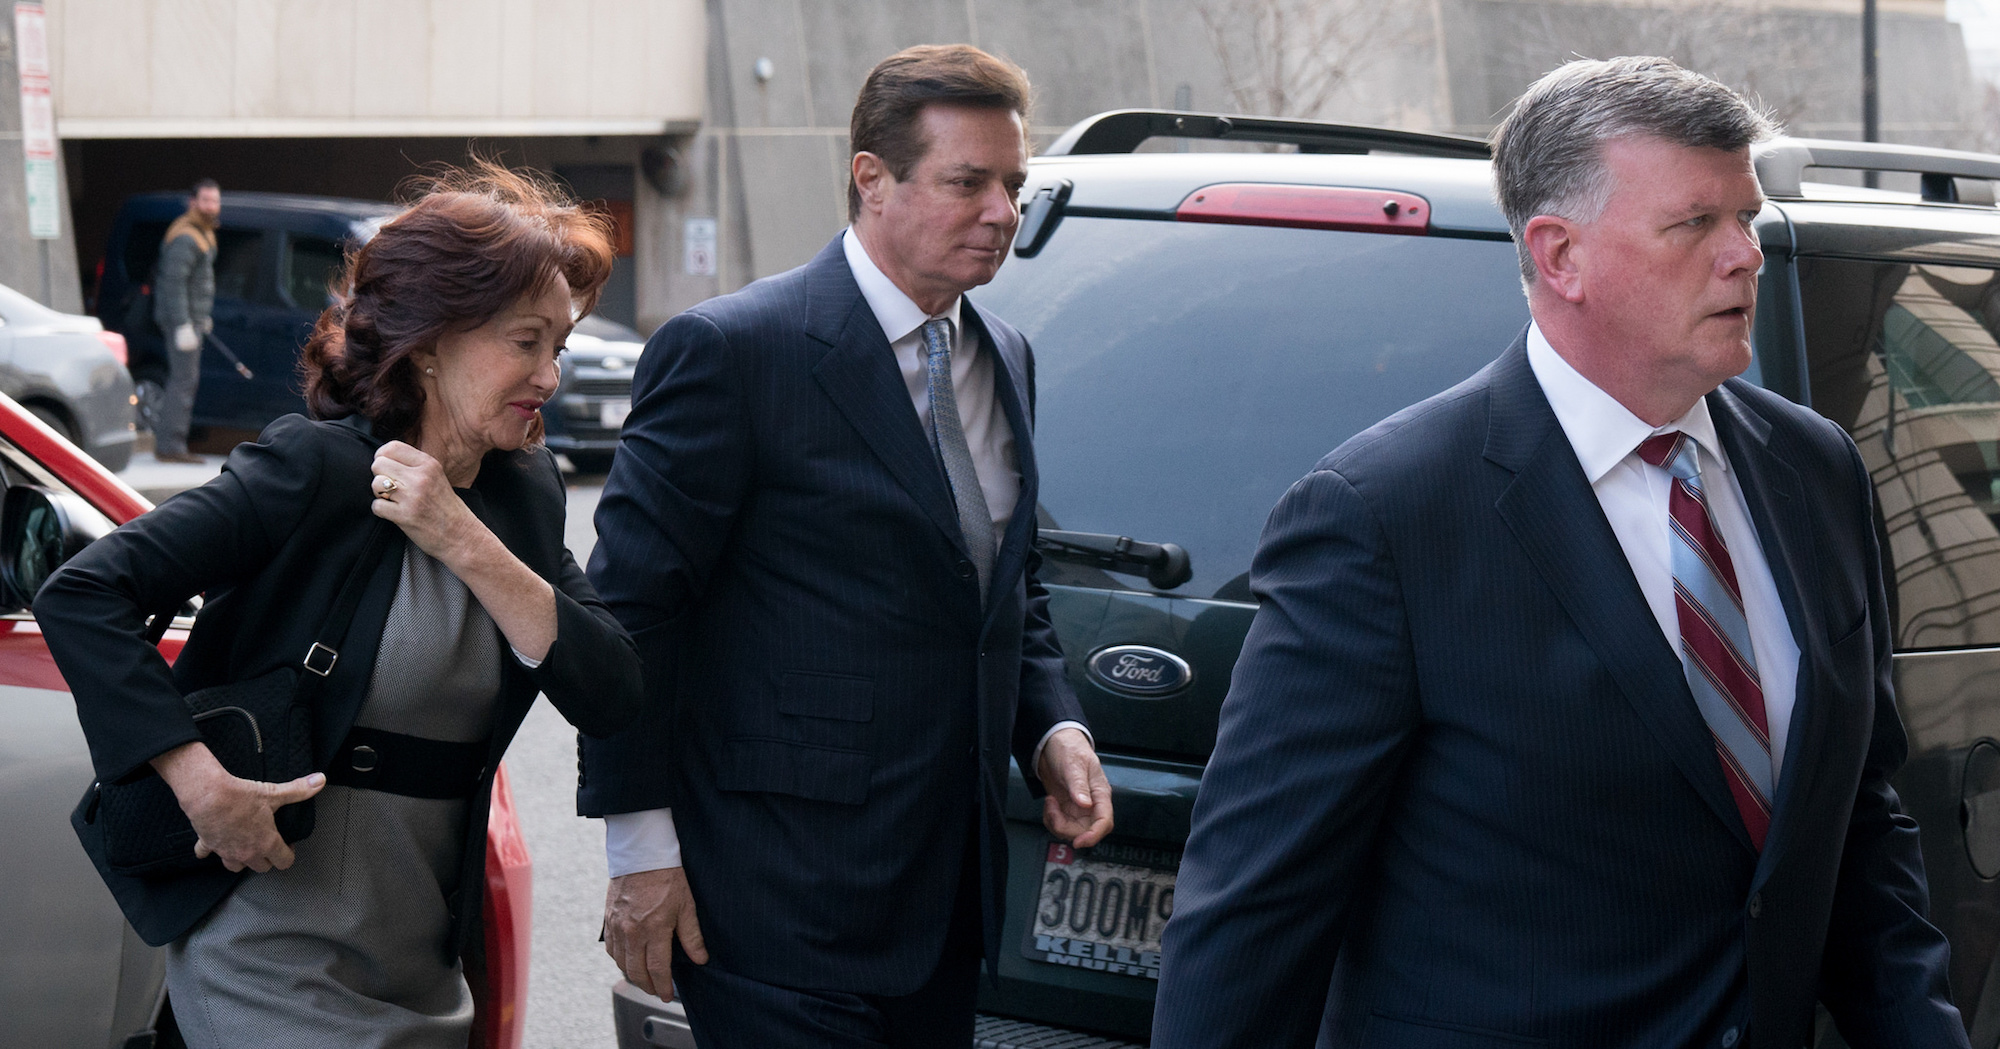 Paul Manafort, his wife, and his lawyer Kevin Downing arriving at court for a status update hearing on February 14th. (Victoria Pickering/Creative Commons)